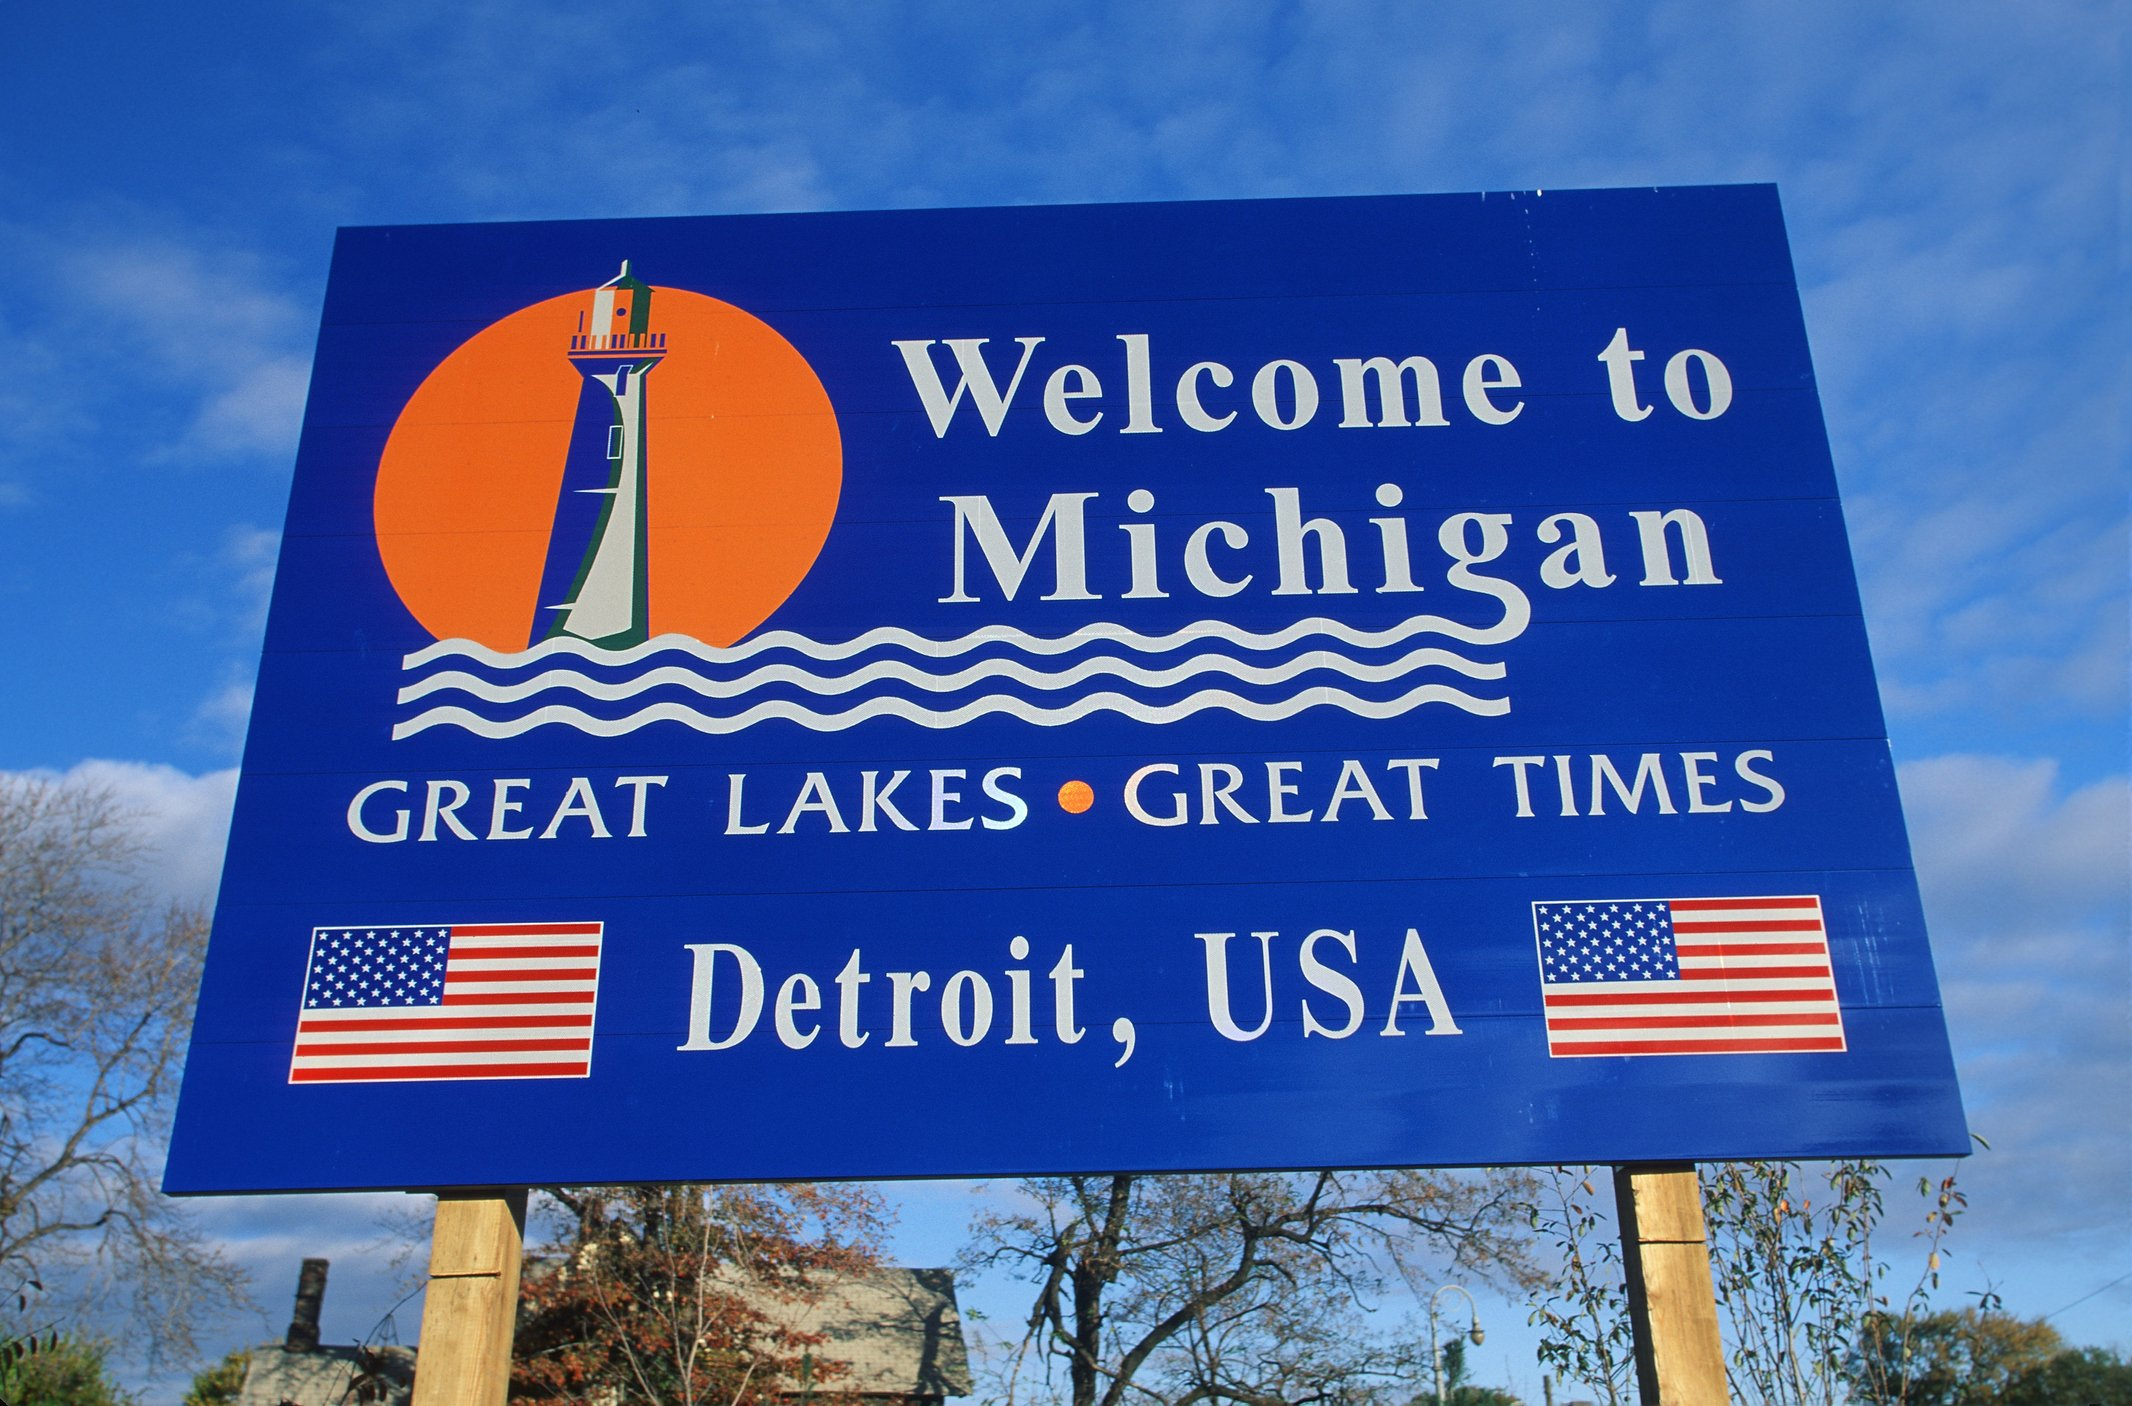 Slide 23 of 51: Michigan ranks number one in state boat registrations and has more shoreline than every state other than Alaska. These are the most charming small towns in every state.